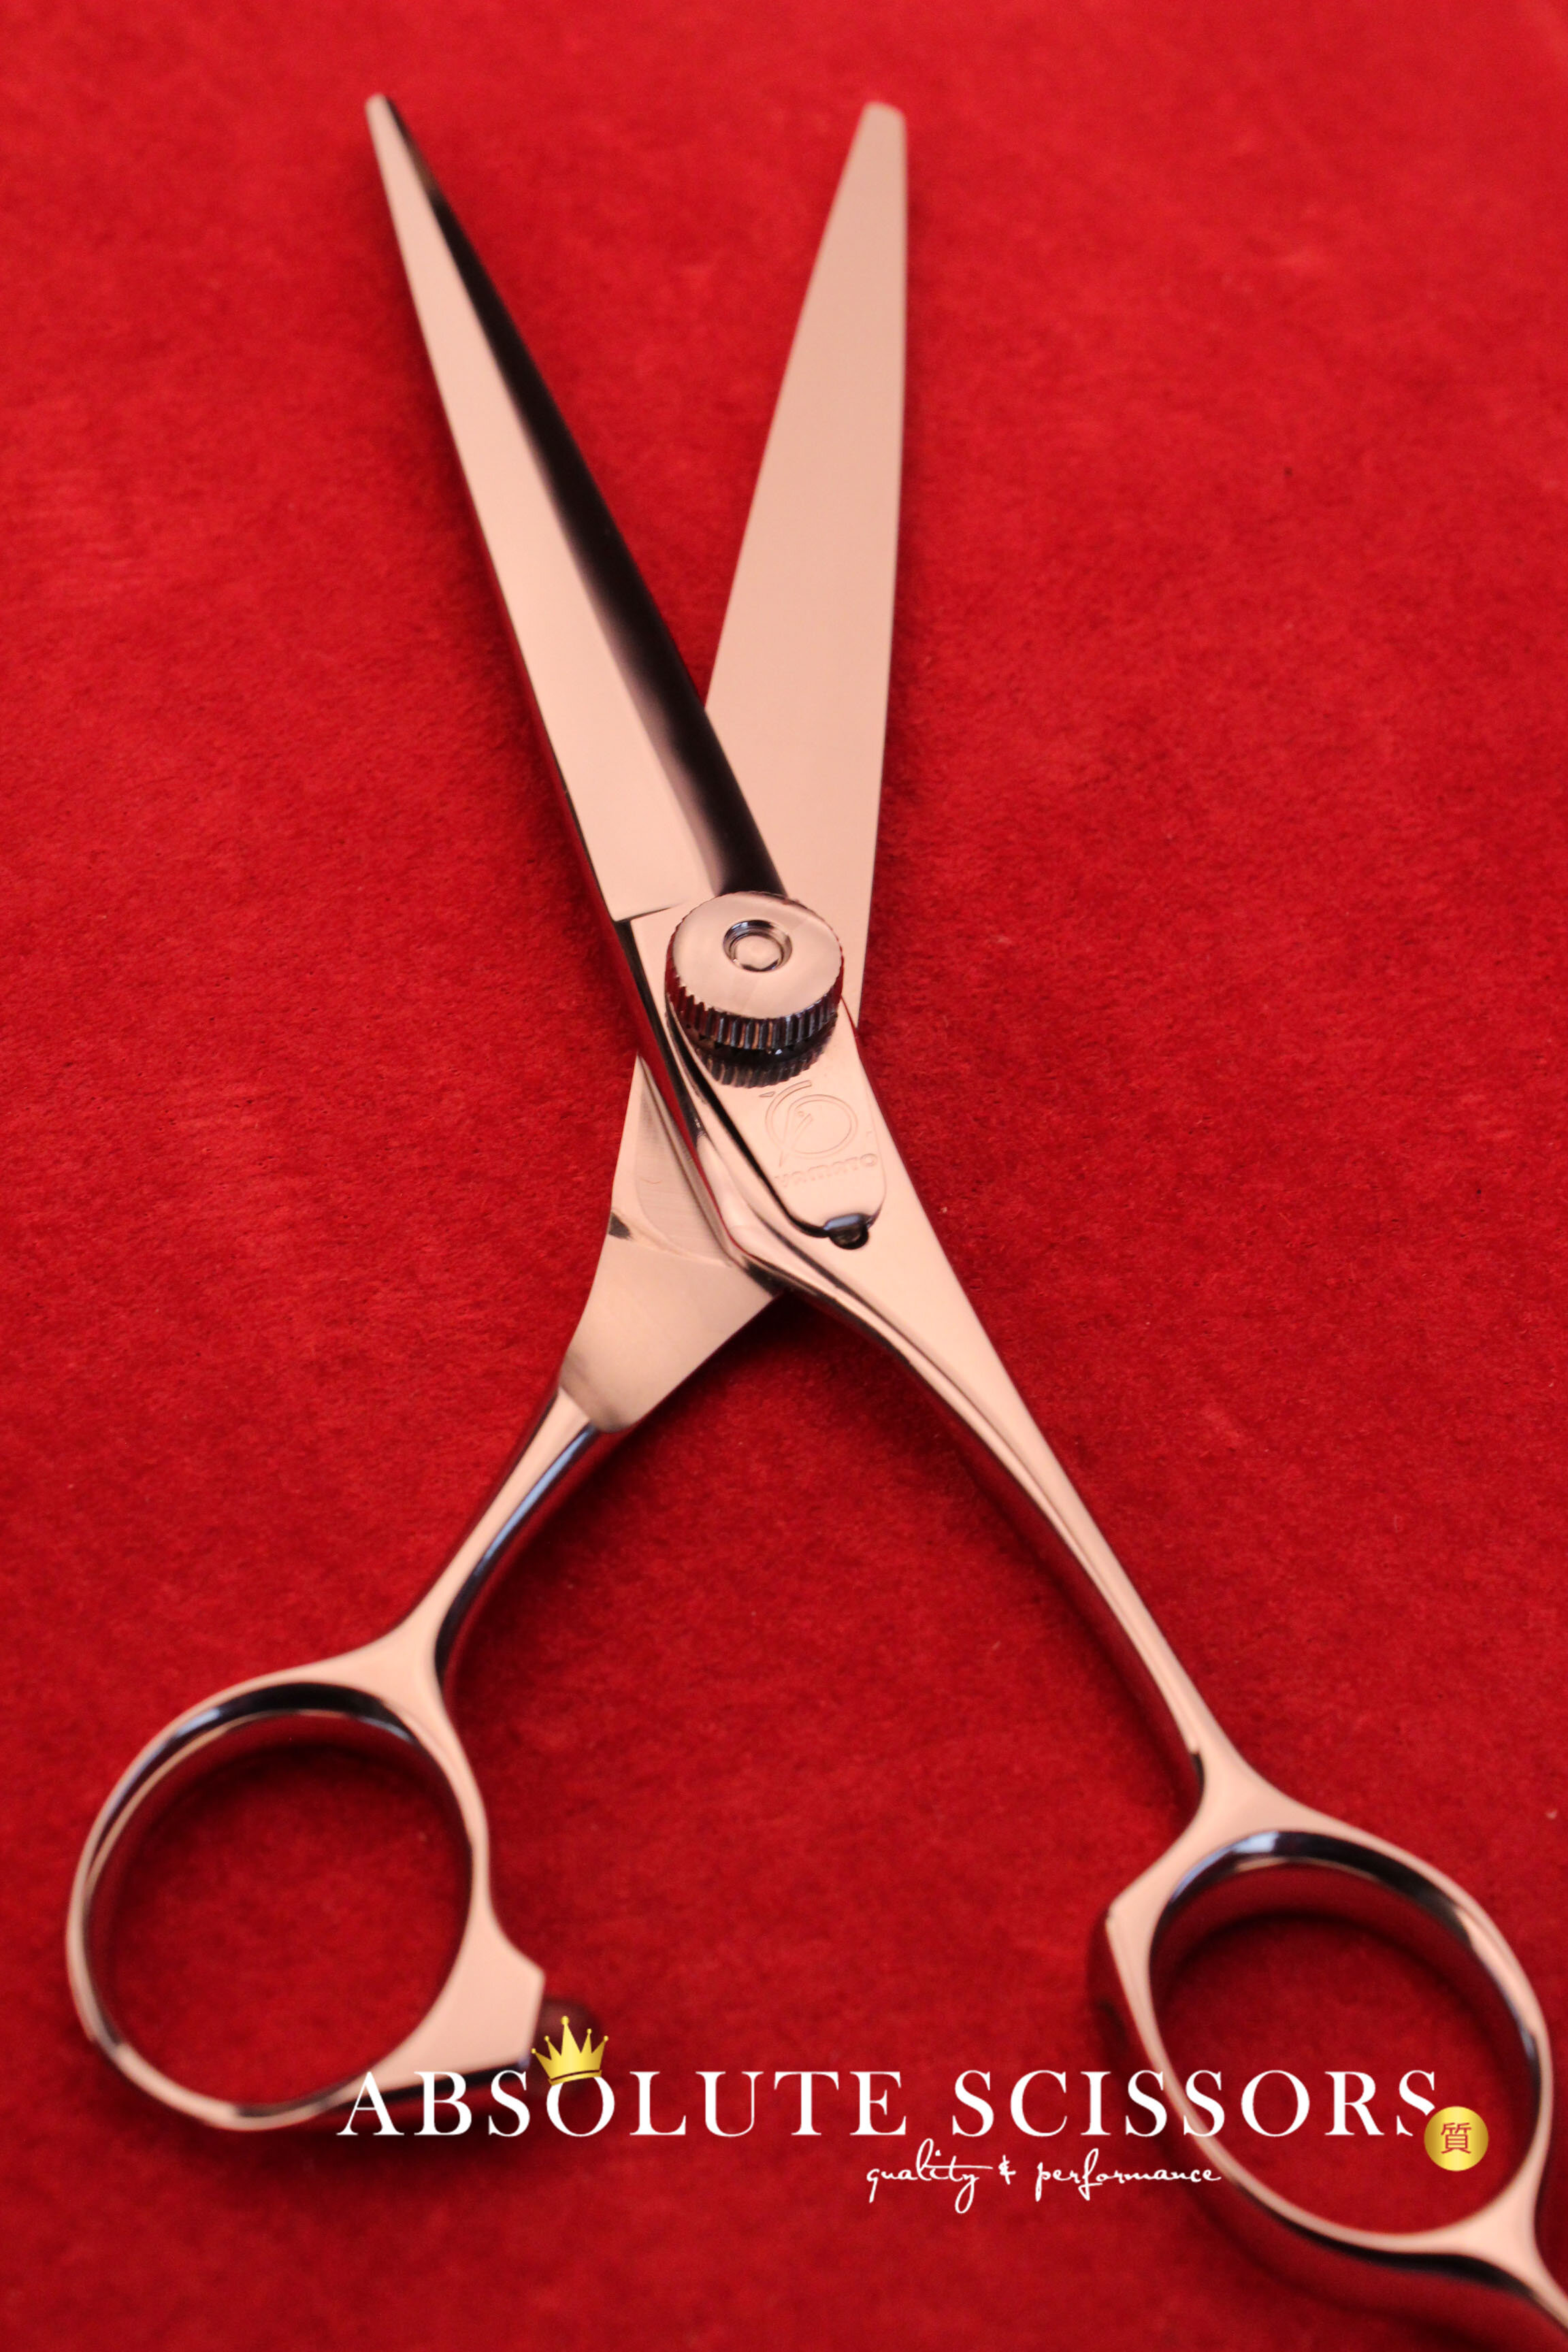 AV70 3779 Yamato hair shears 7 inches